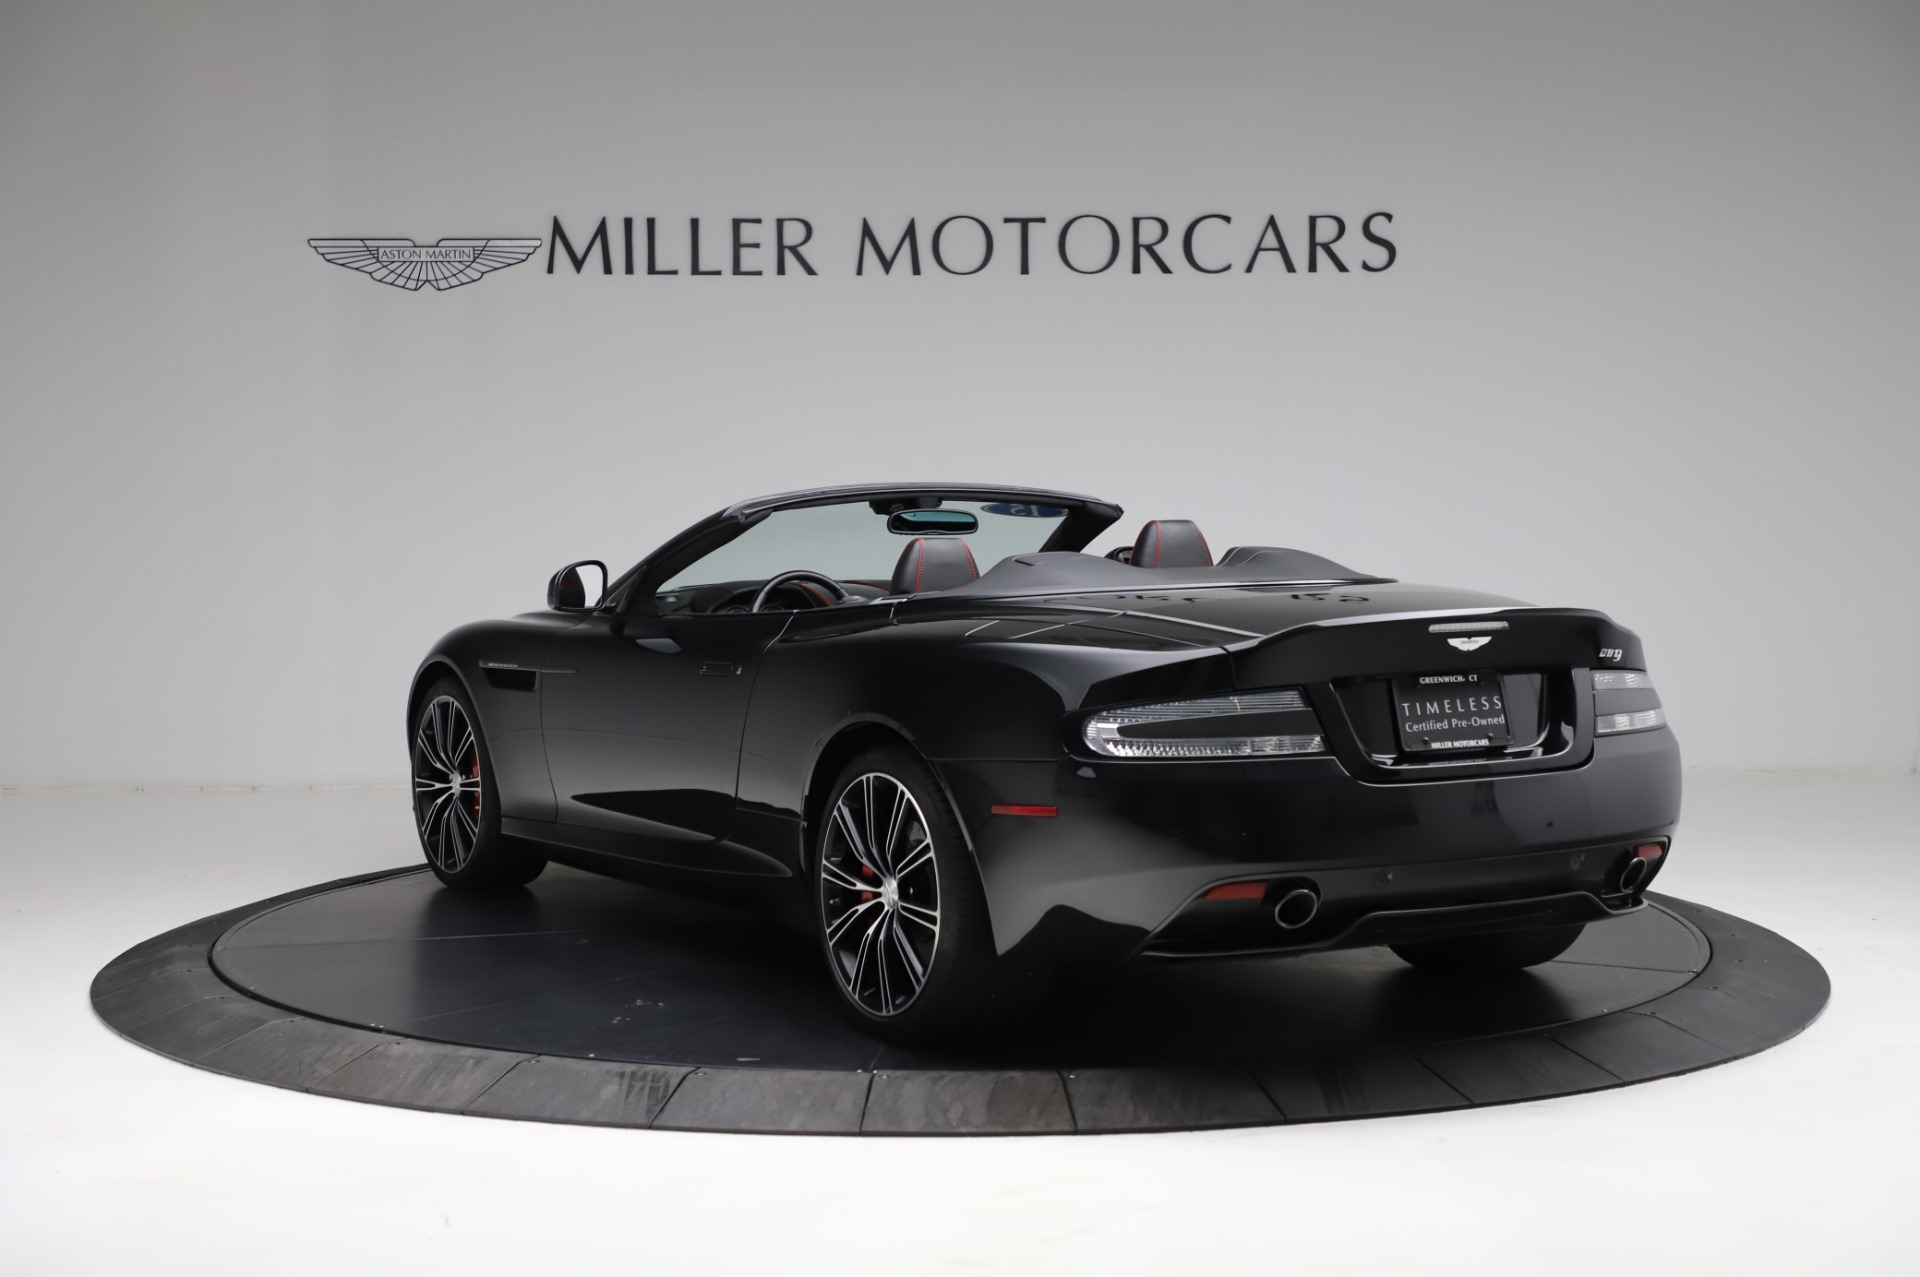 Used 2015 Aston Martin DB9 Convertible For Sale In Westport, CT 1919_p4